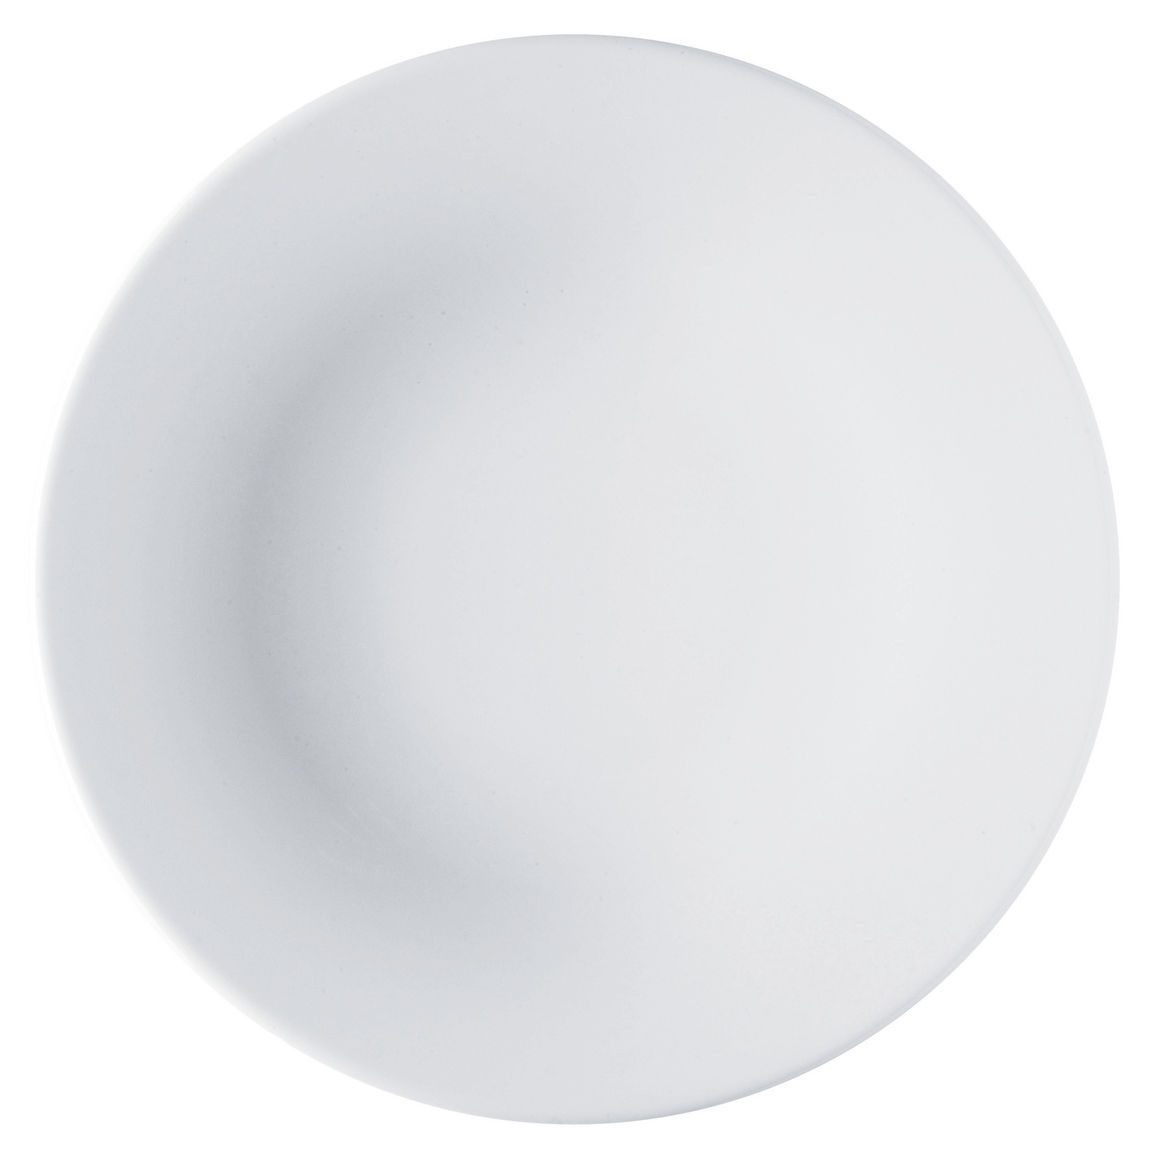 Arts de la table - Assiettes - Assiette Ku - Alessi - Blanc - Porcelaine